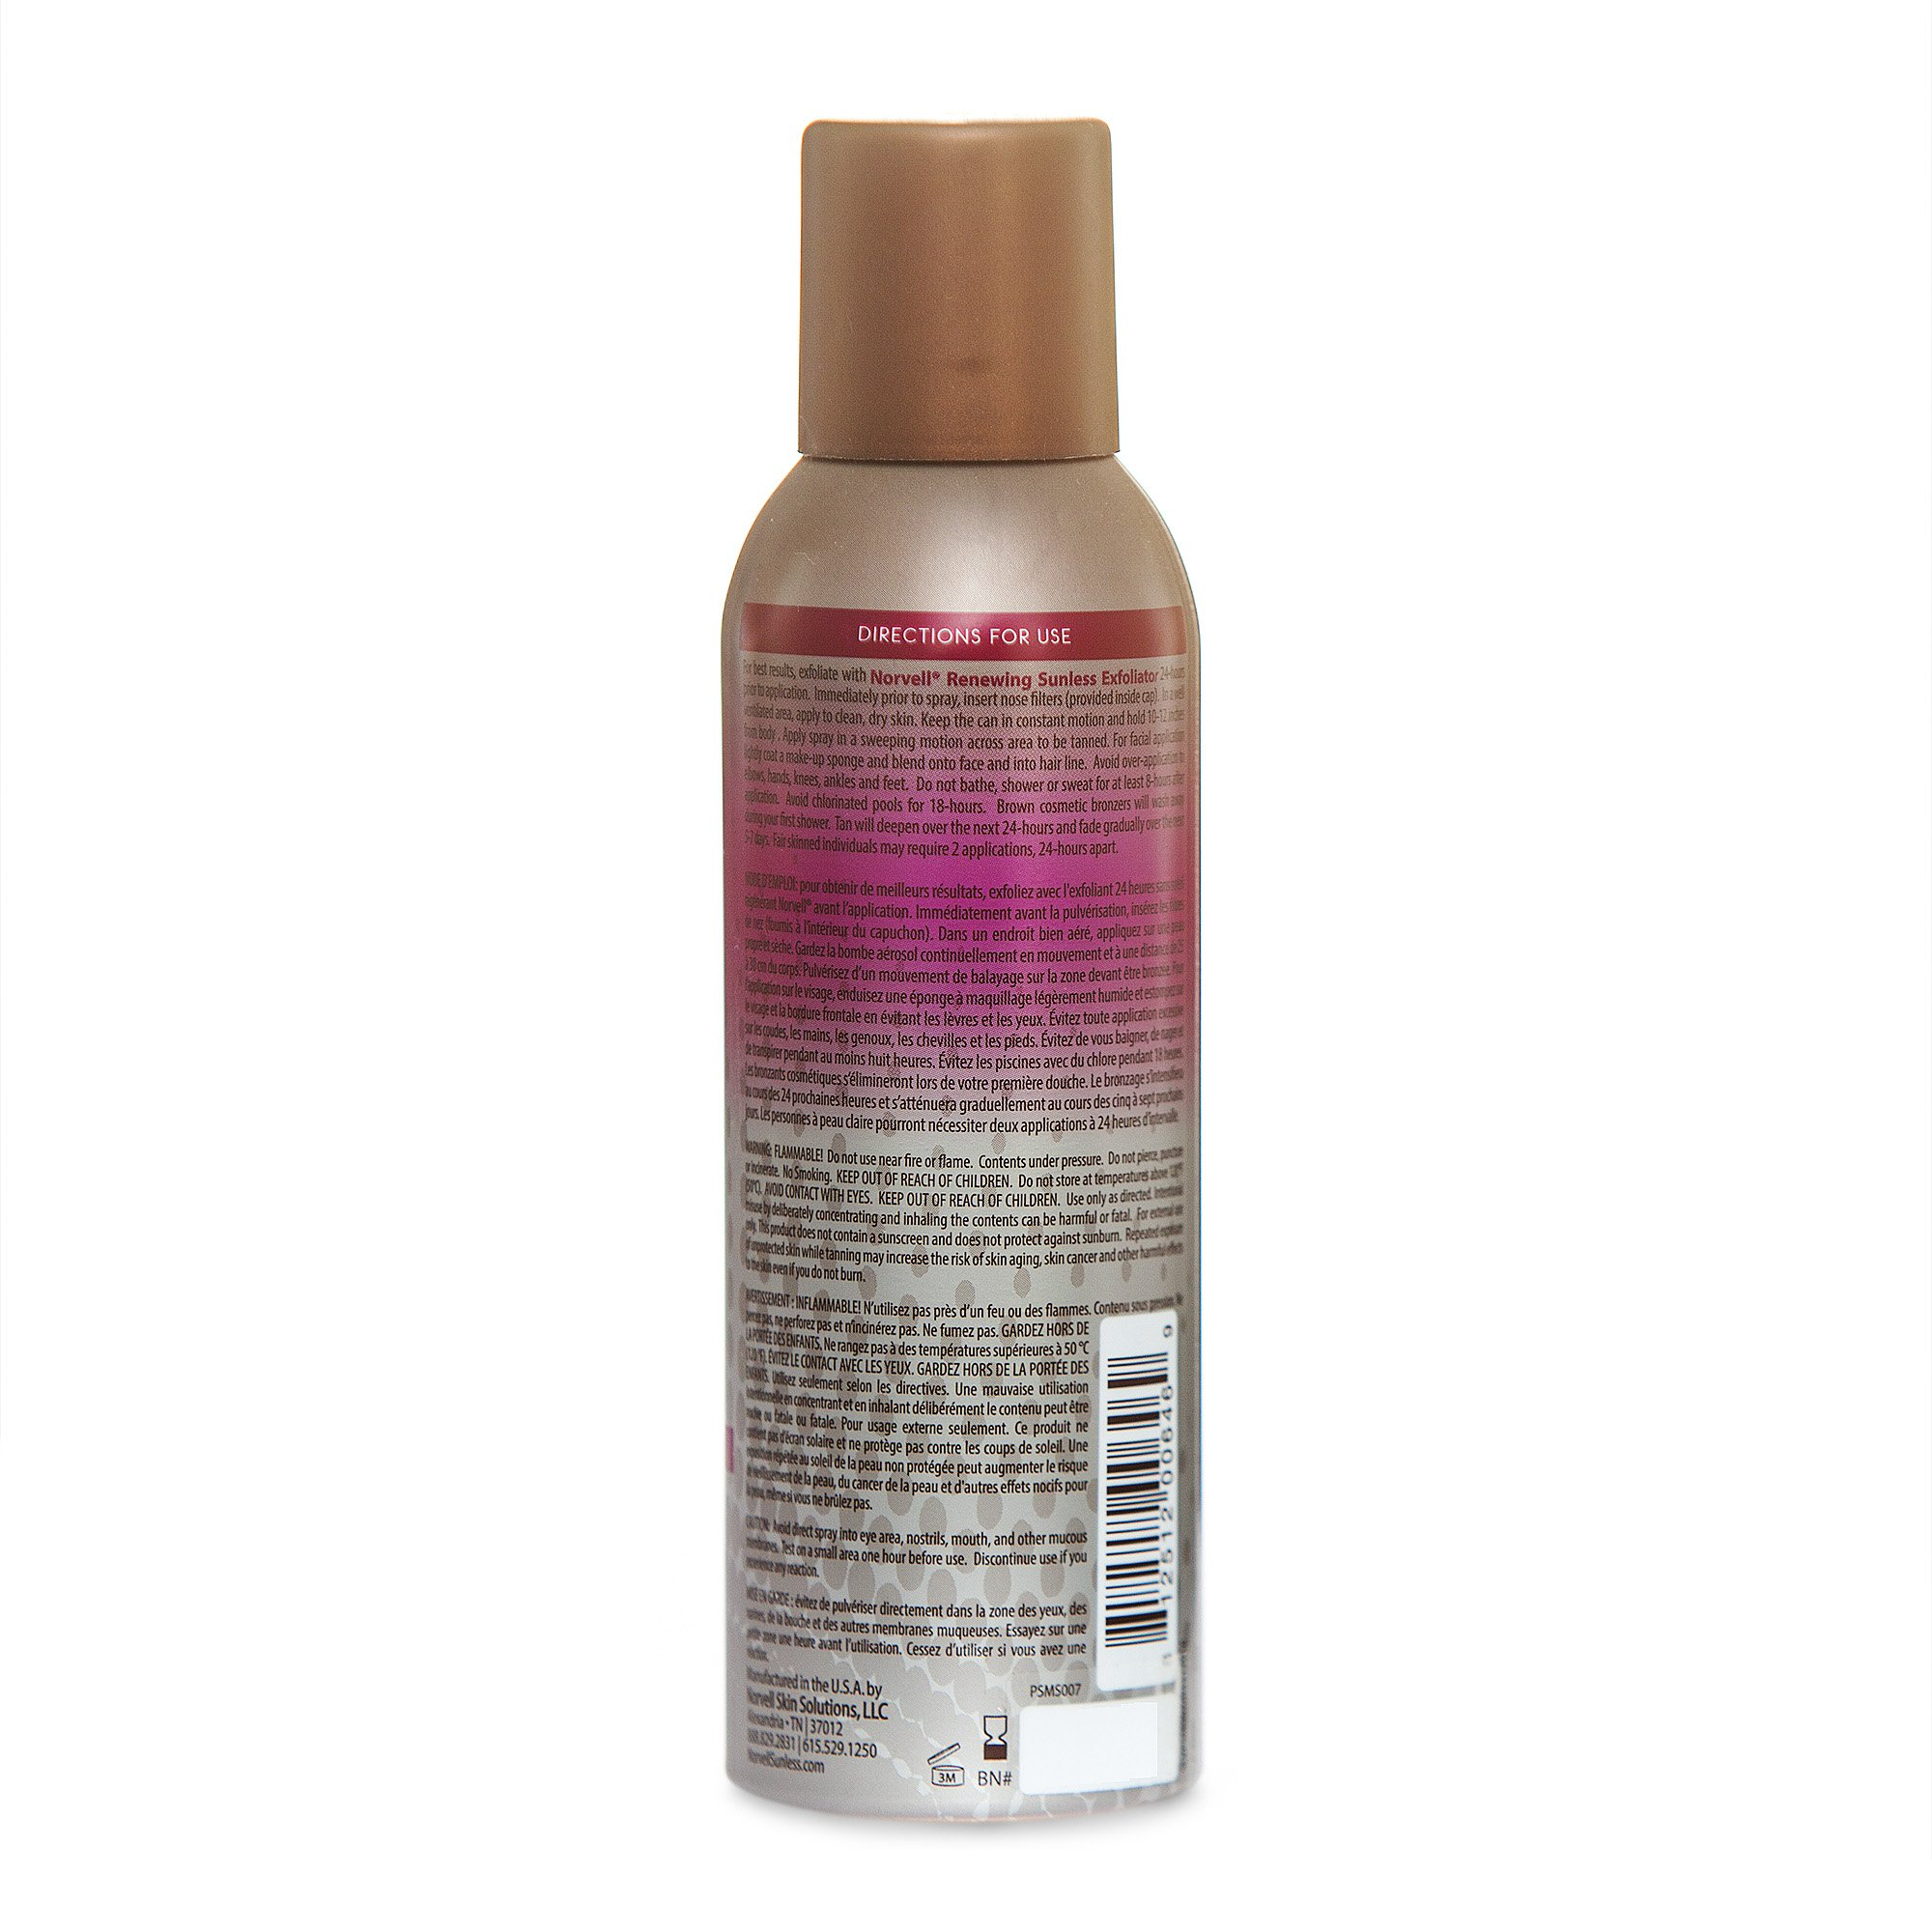 Norvell Professional Sunless Self-Tanning Mist - Airbrush Spray Solution with Bronzer for Instant Sun Kissed Glow, 7 fl.oz. by Norvell (Image #2)